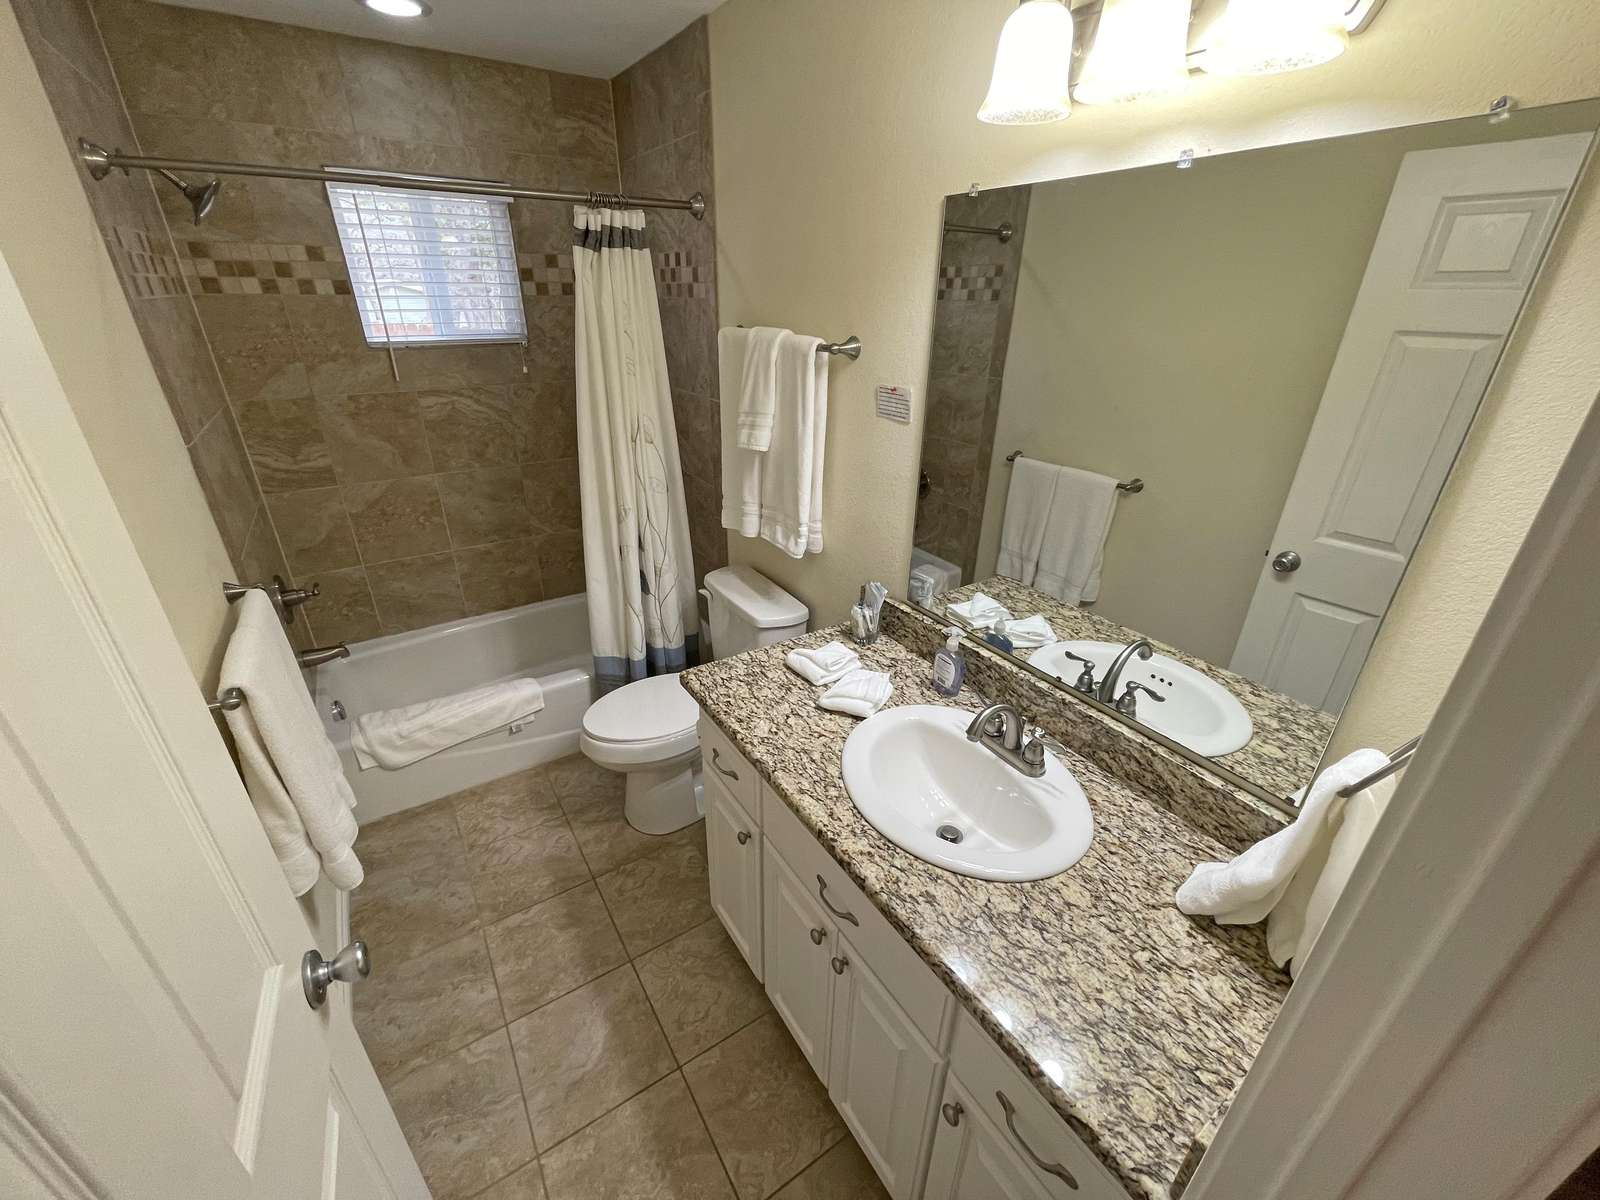 The main bathroom with granite counters and tile shower/tub unit.